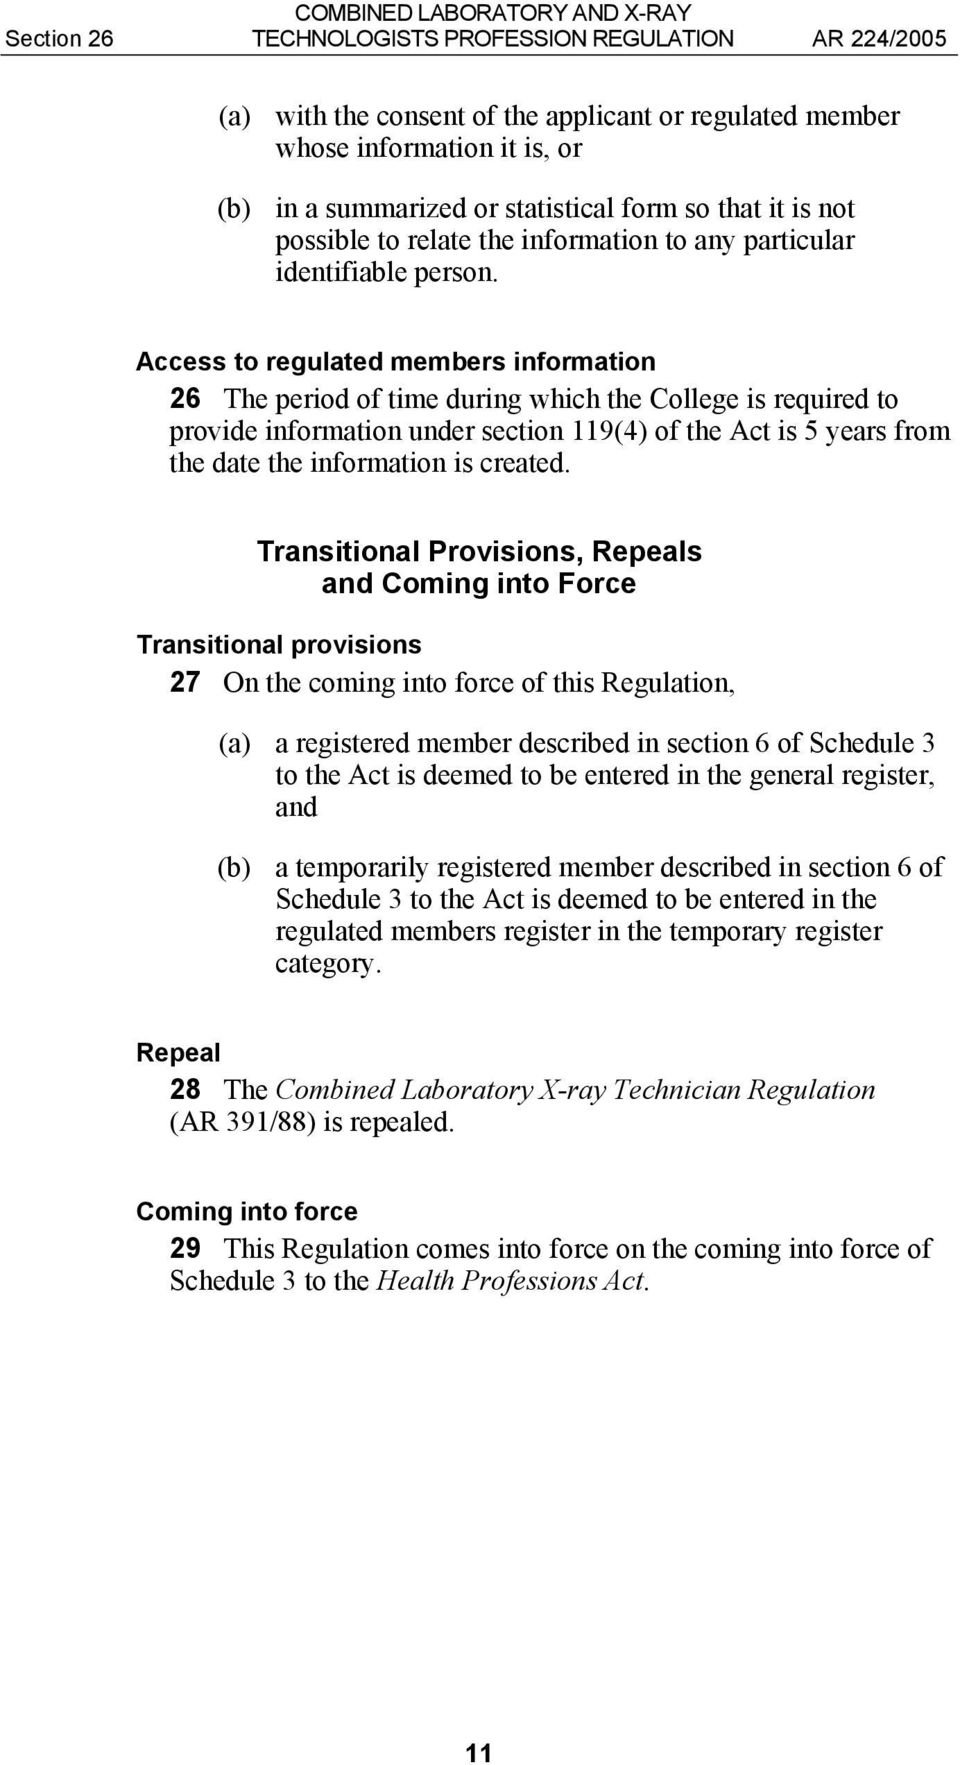 Access to regulated members information 26 The period of time during which the College is required to provide information under section 119(4) of the Act is 5 years from the date the information is